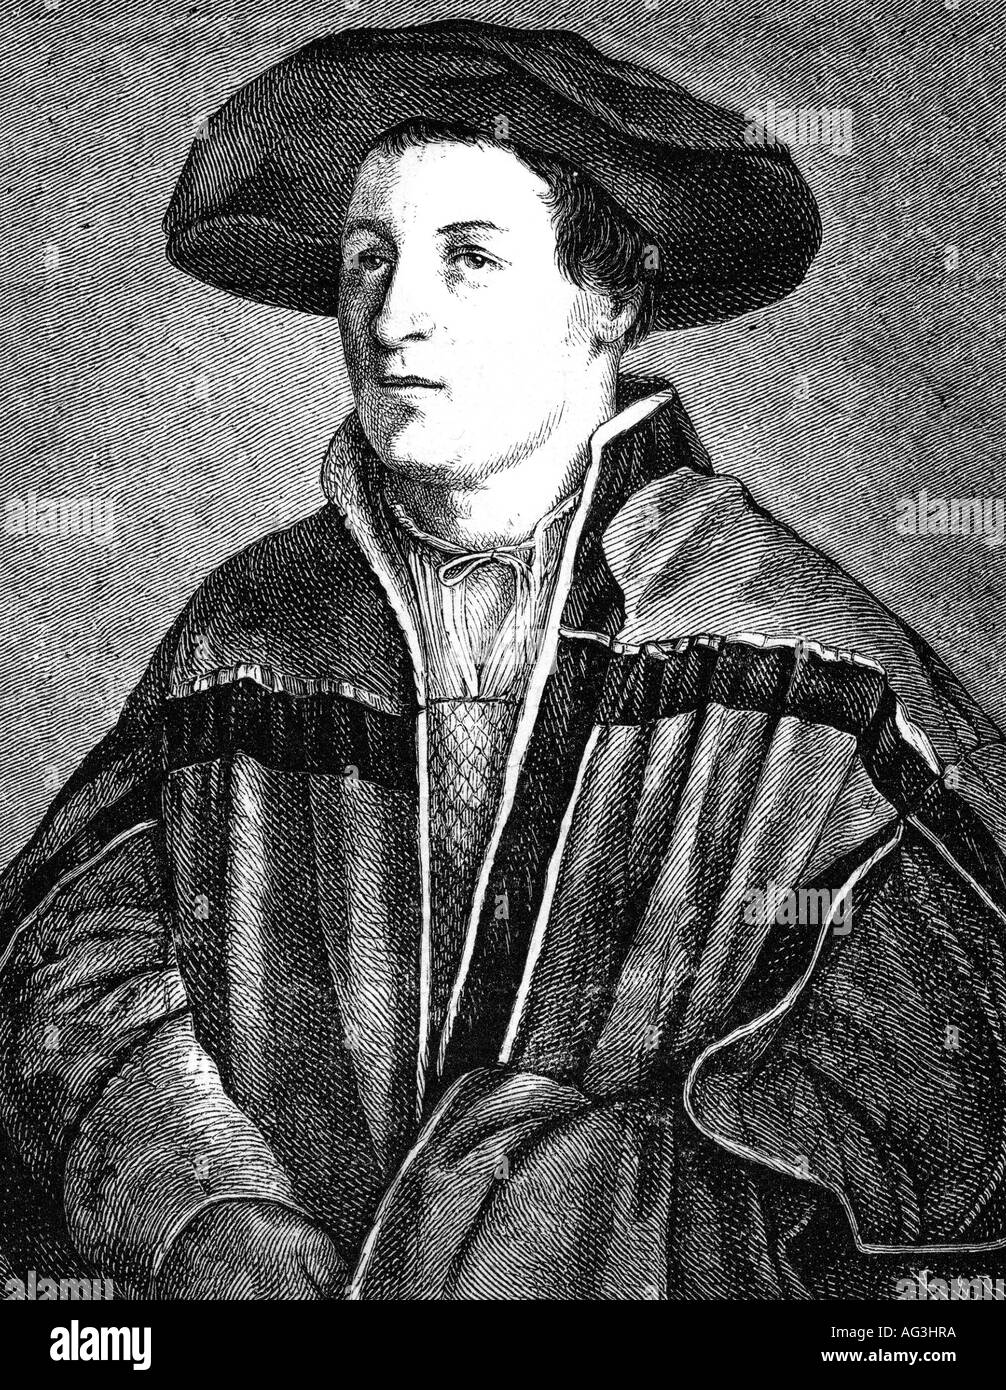 Holbein, Hans, the Younger, 1497 - 29.11.1543, German painter, self half length, engraving after painting, renaissance, , Artist's Copyright has not to be cleared - Stock Image